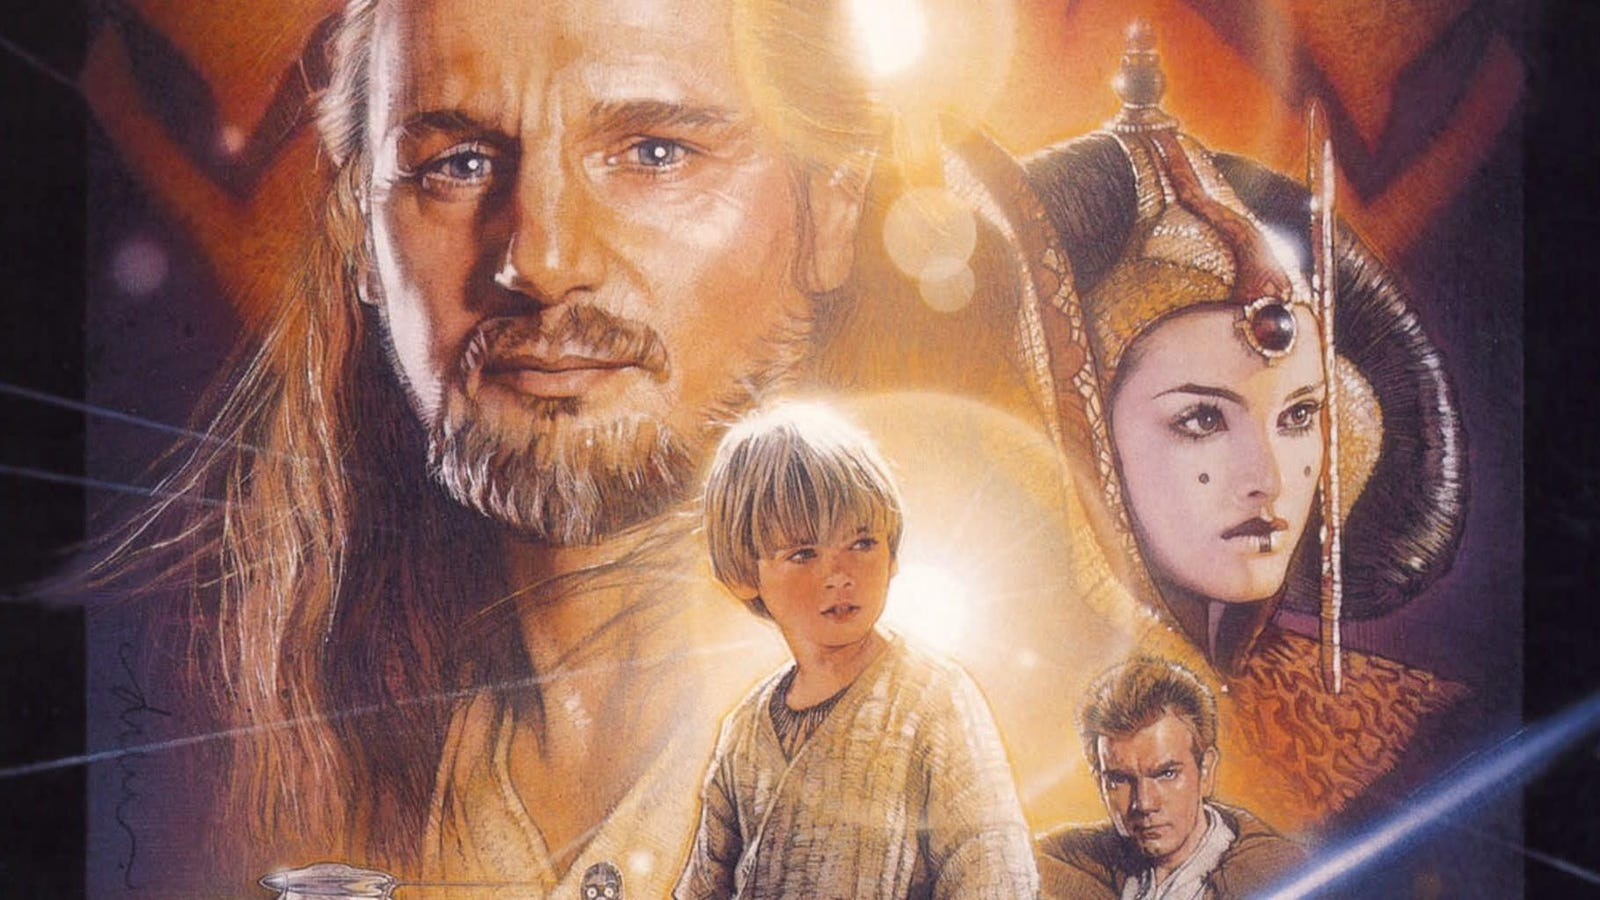 A Generation Looks Back At 20 Years Of Star Wars Episode I: The Phantom Menace